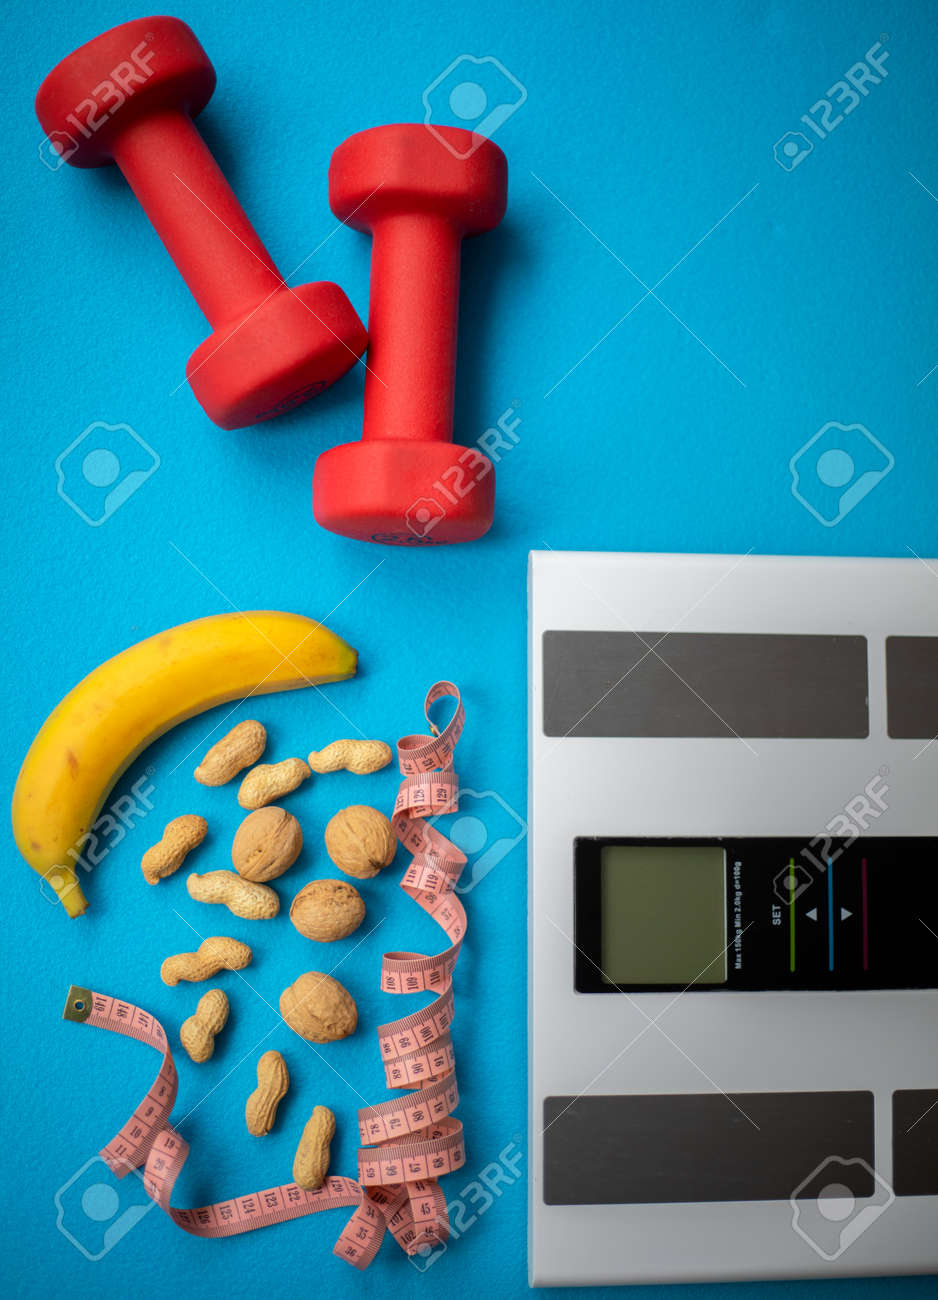 Electronic scale, banana, nuts, measuring tape and dumbbells on a blue background. Food and fitness equipment for a healthy lifestyle. Keep your body in good shape - 161019323